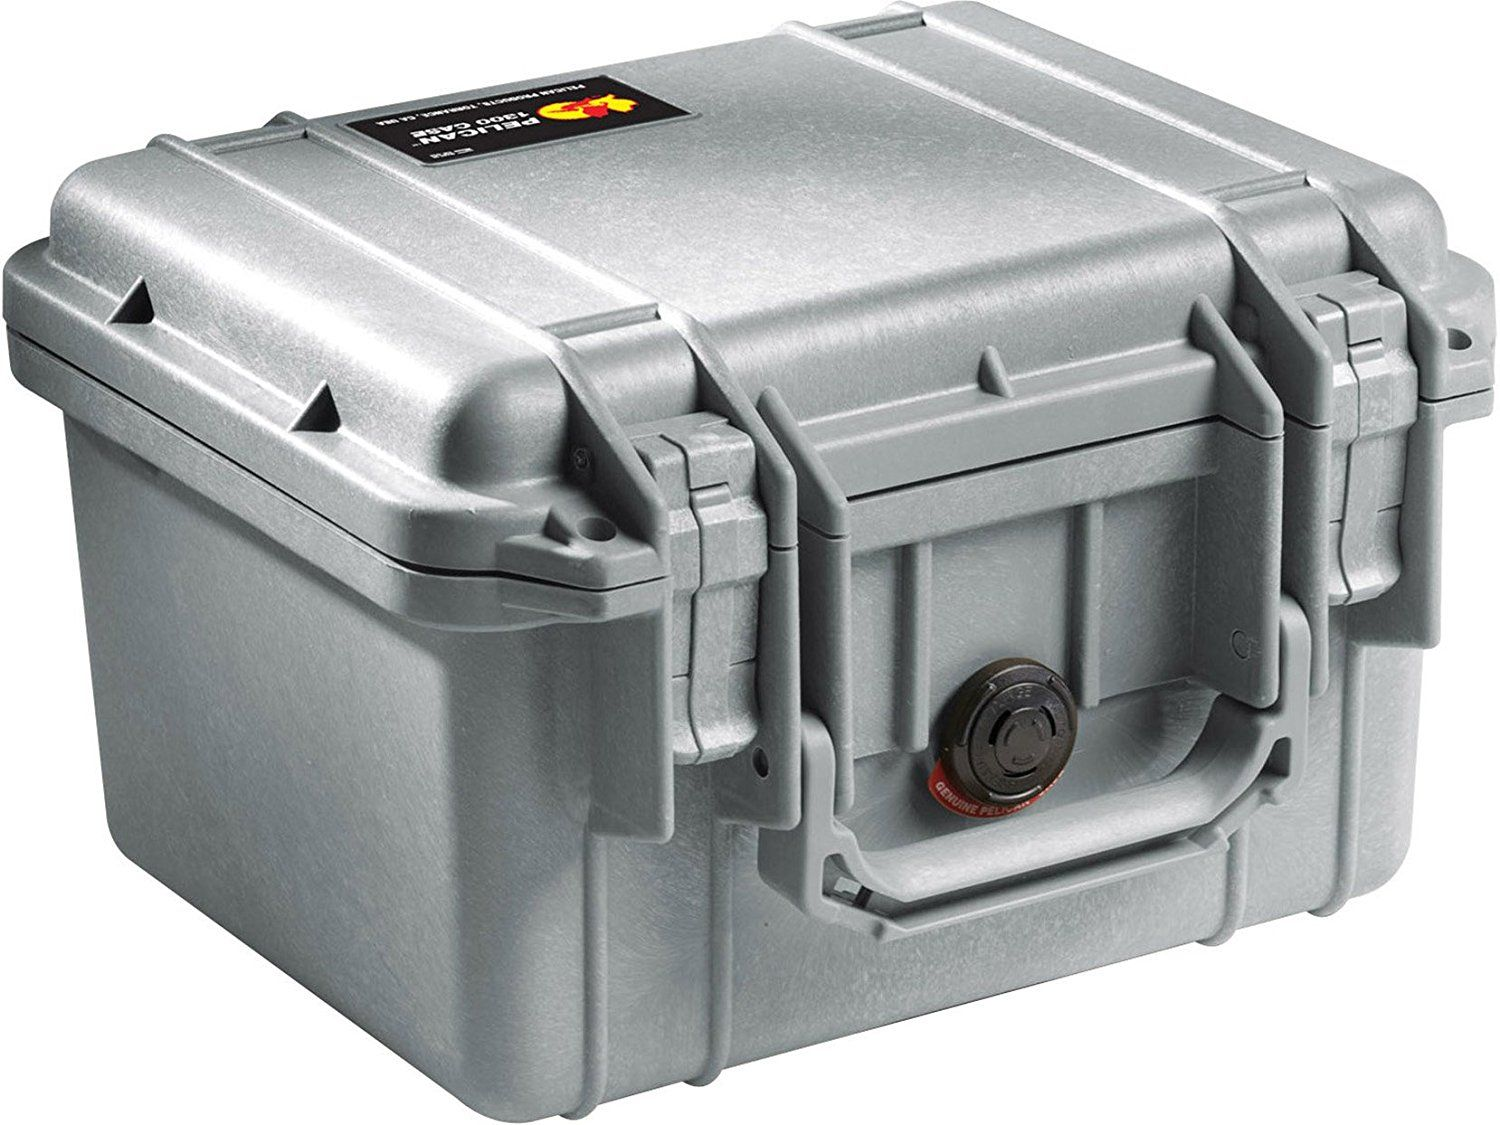 Pelican 1300 Case with Foam for Camera  - Silver *** You can get more details by clicking on the image. (This is an Amazon Affiliate link and I receive a commission for the sales)